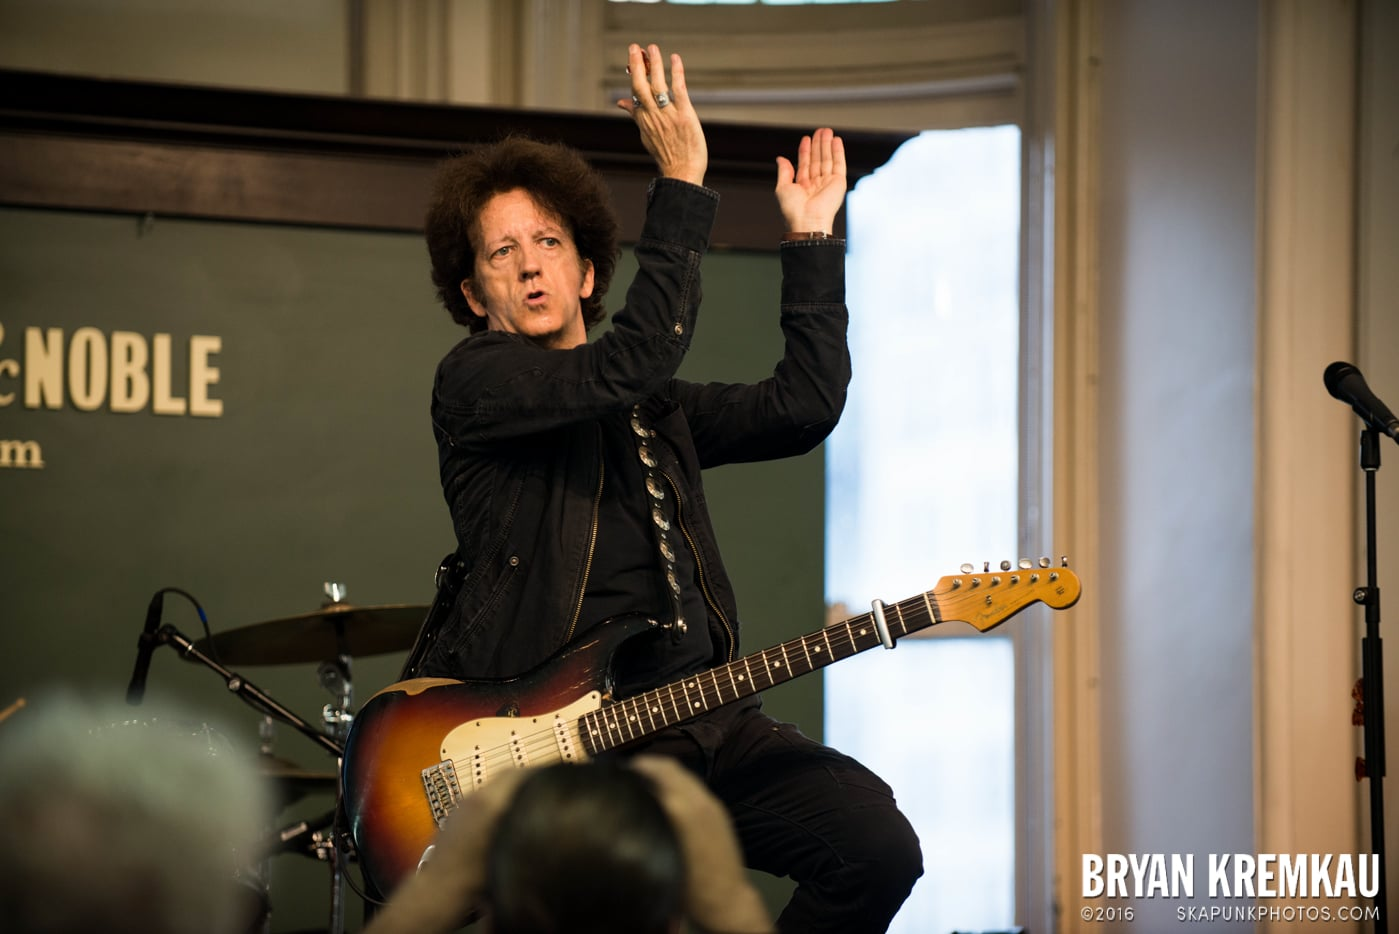 Willie Nile @ Barnes & Noble Union Square, NYC - June 25th 2013 (3)